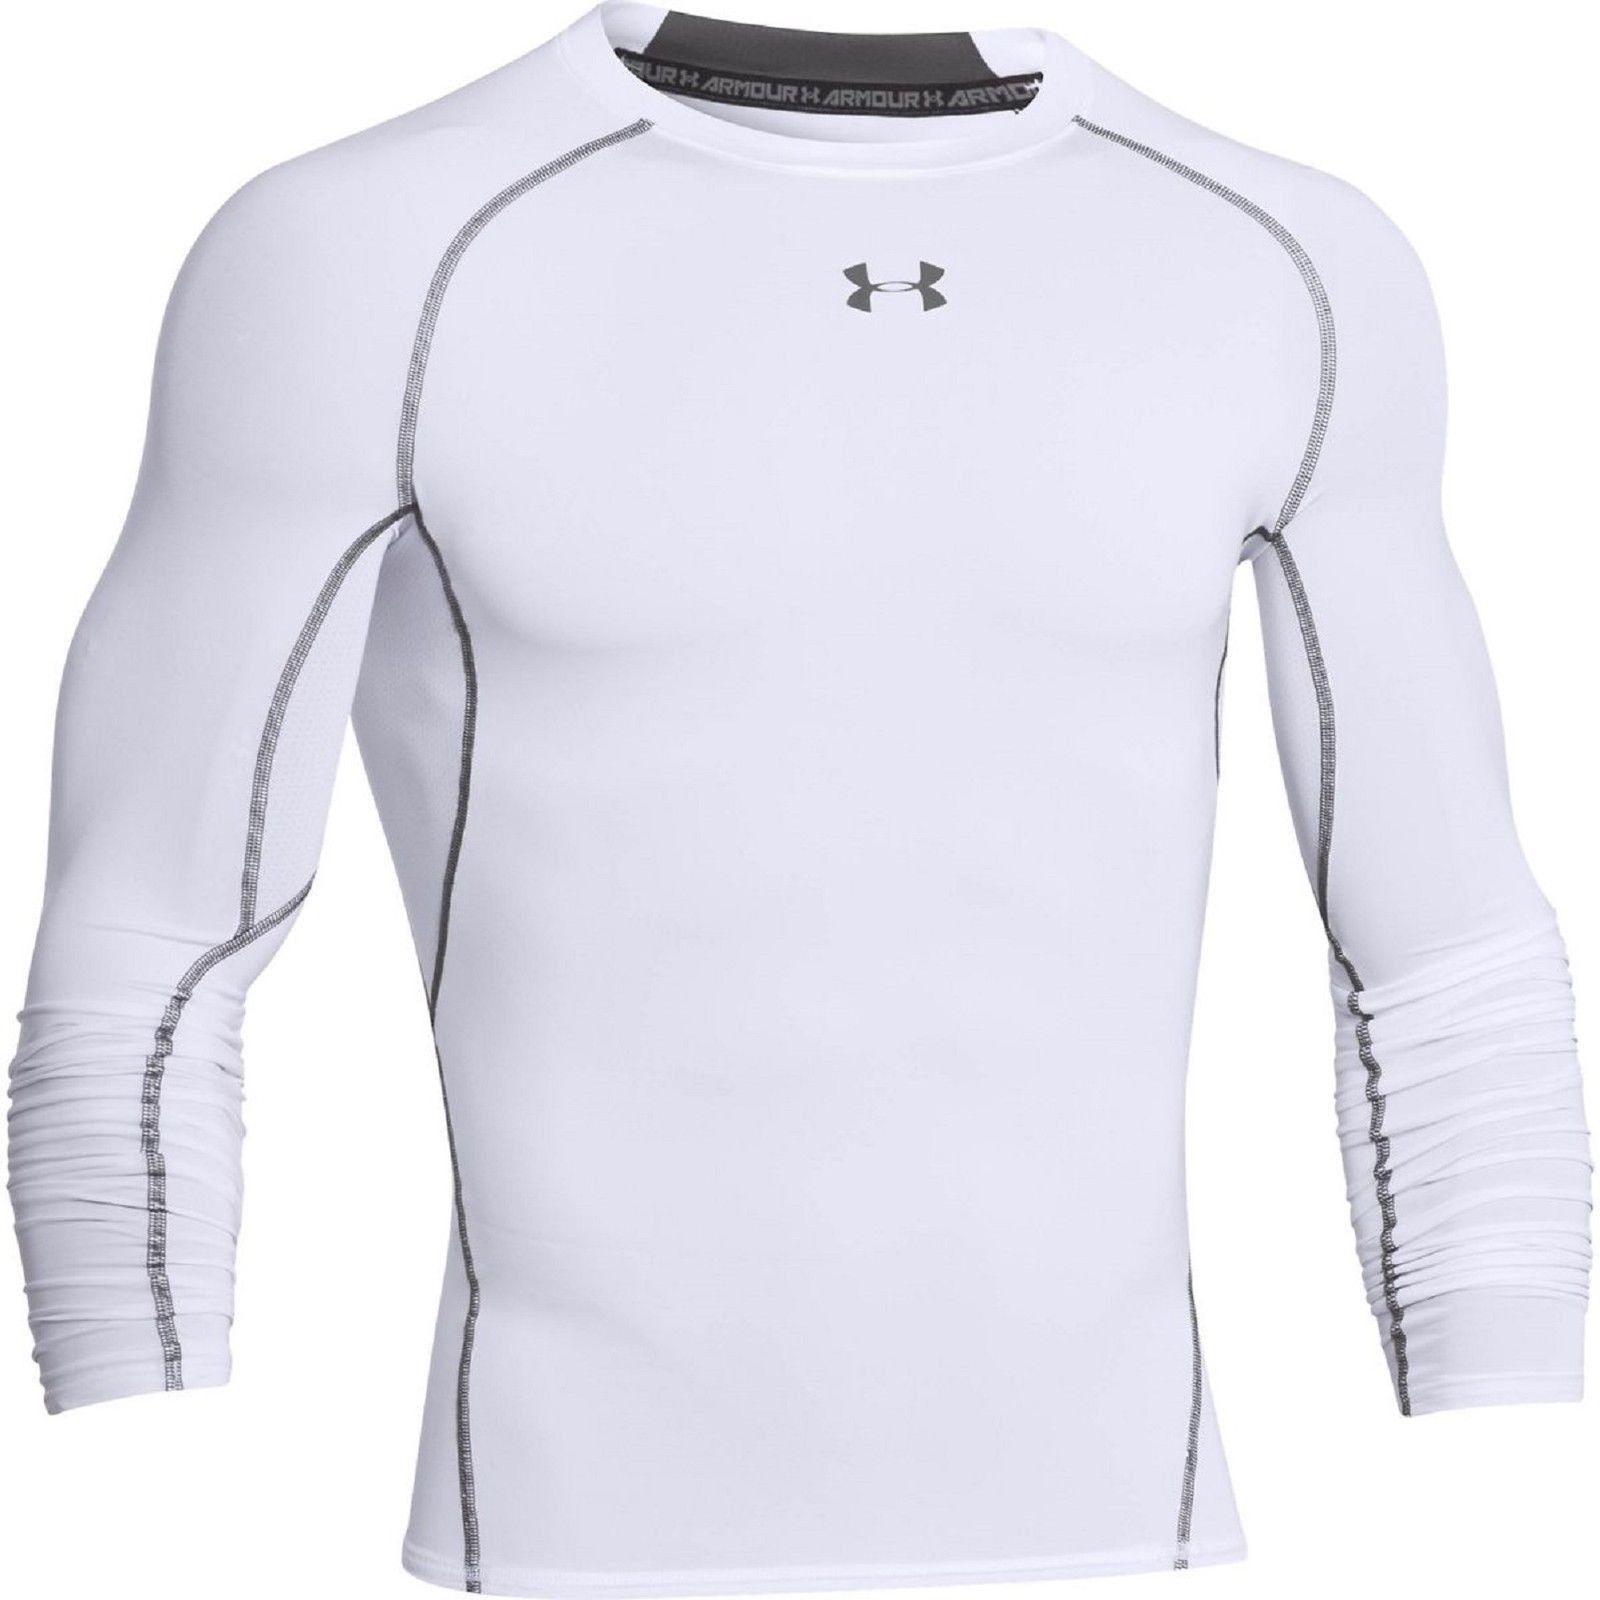 UNDER ARMOUR LONG SLEEVE HEATGEAR COMPRESSION SHIRT Armour is the first  thing you put on   the last thing you take off c2b8dc4fbb